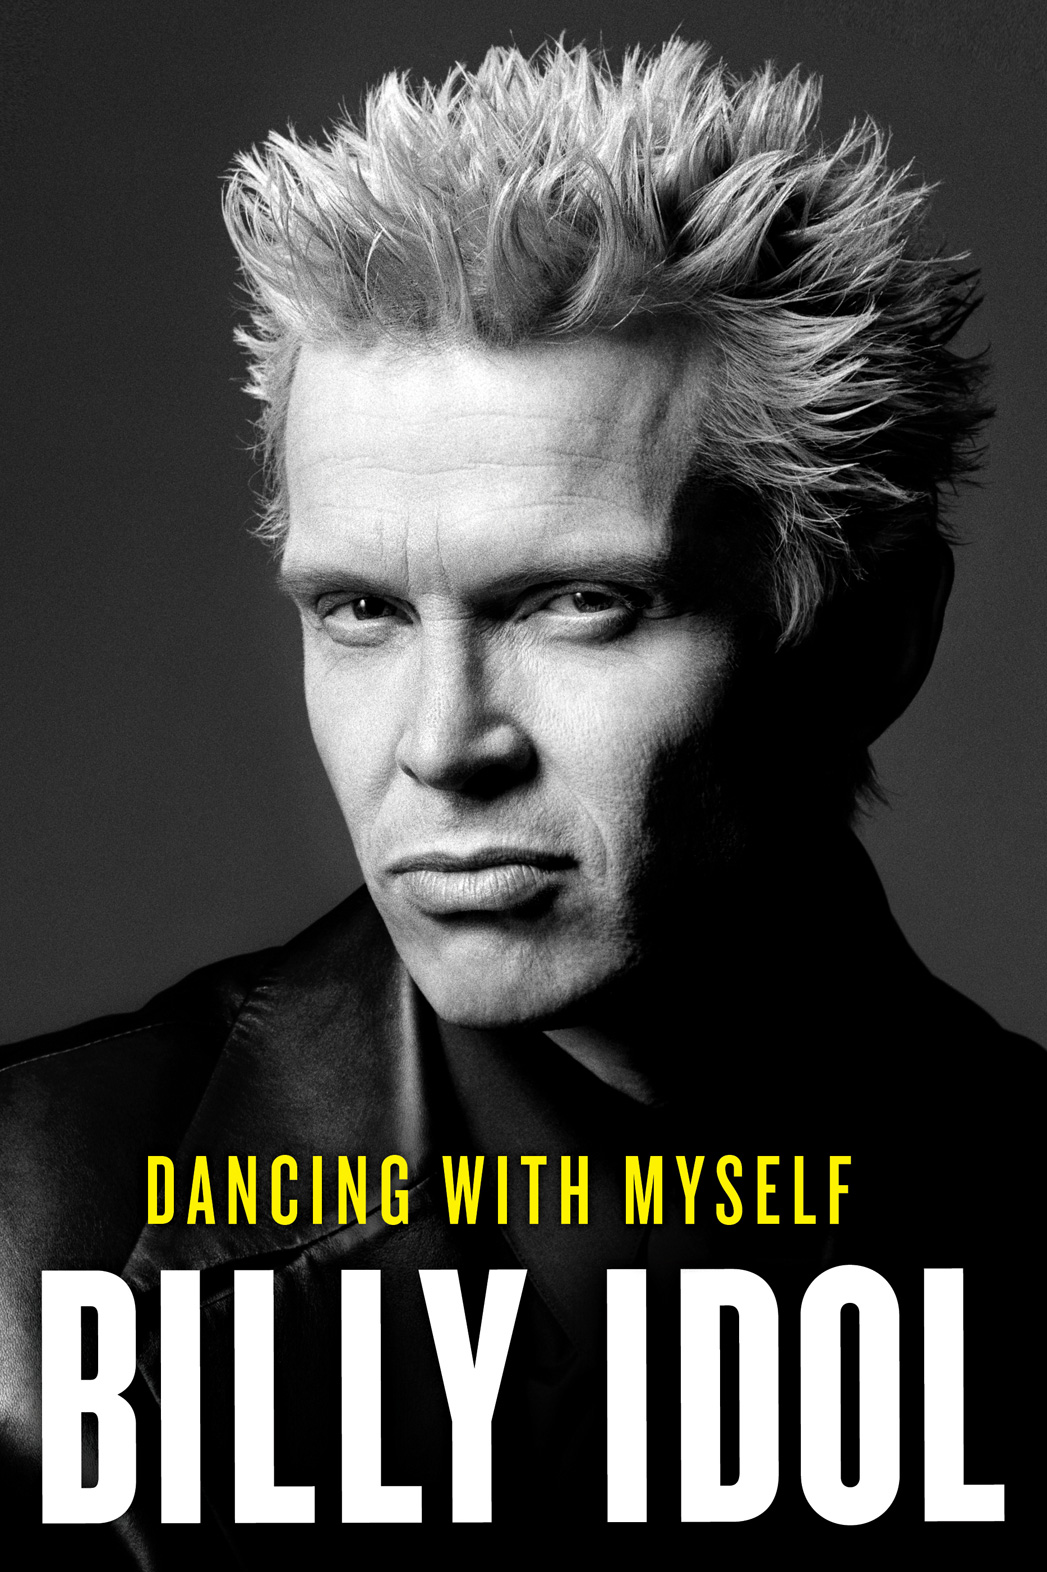 billy_idol_dancing_with_myself_final_cover 1 dancing with myself billy idol